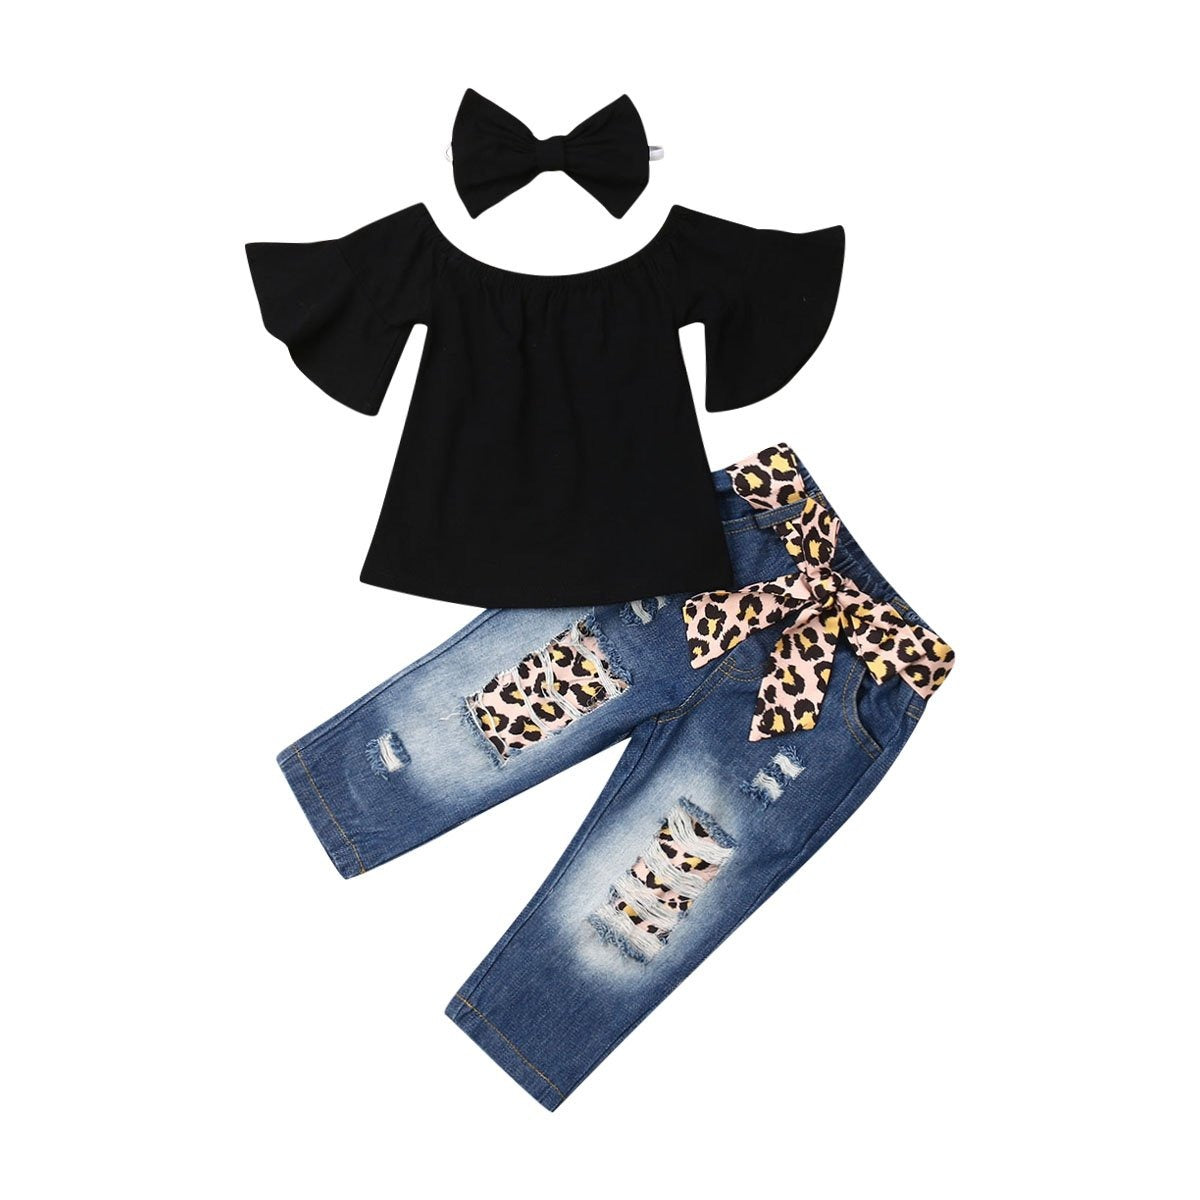 Leopard night set